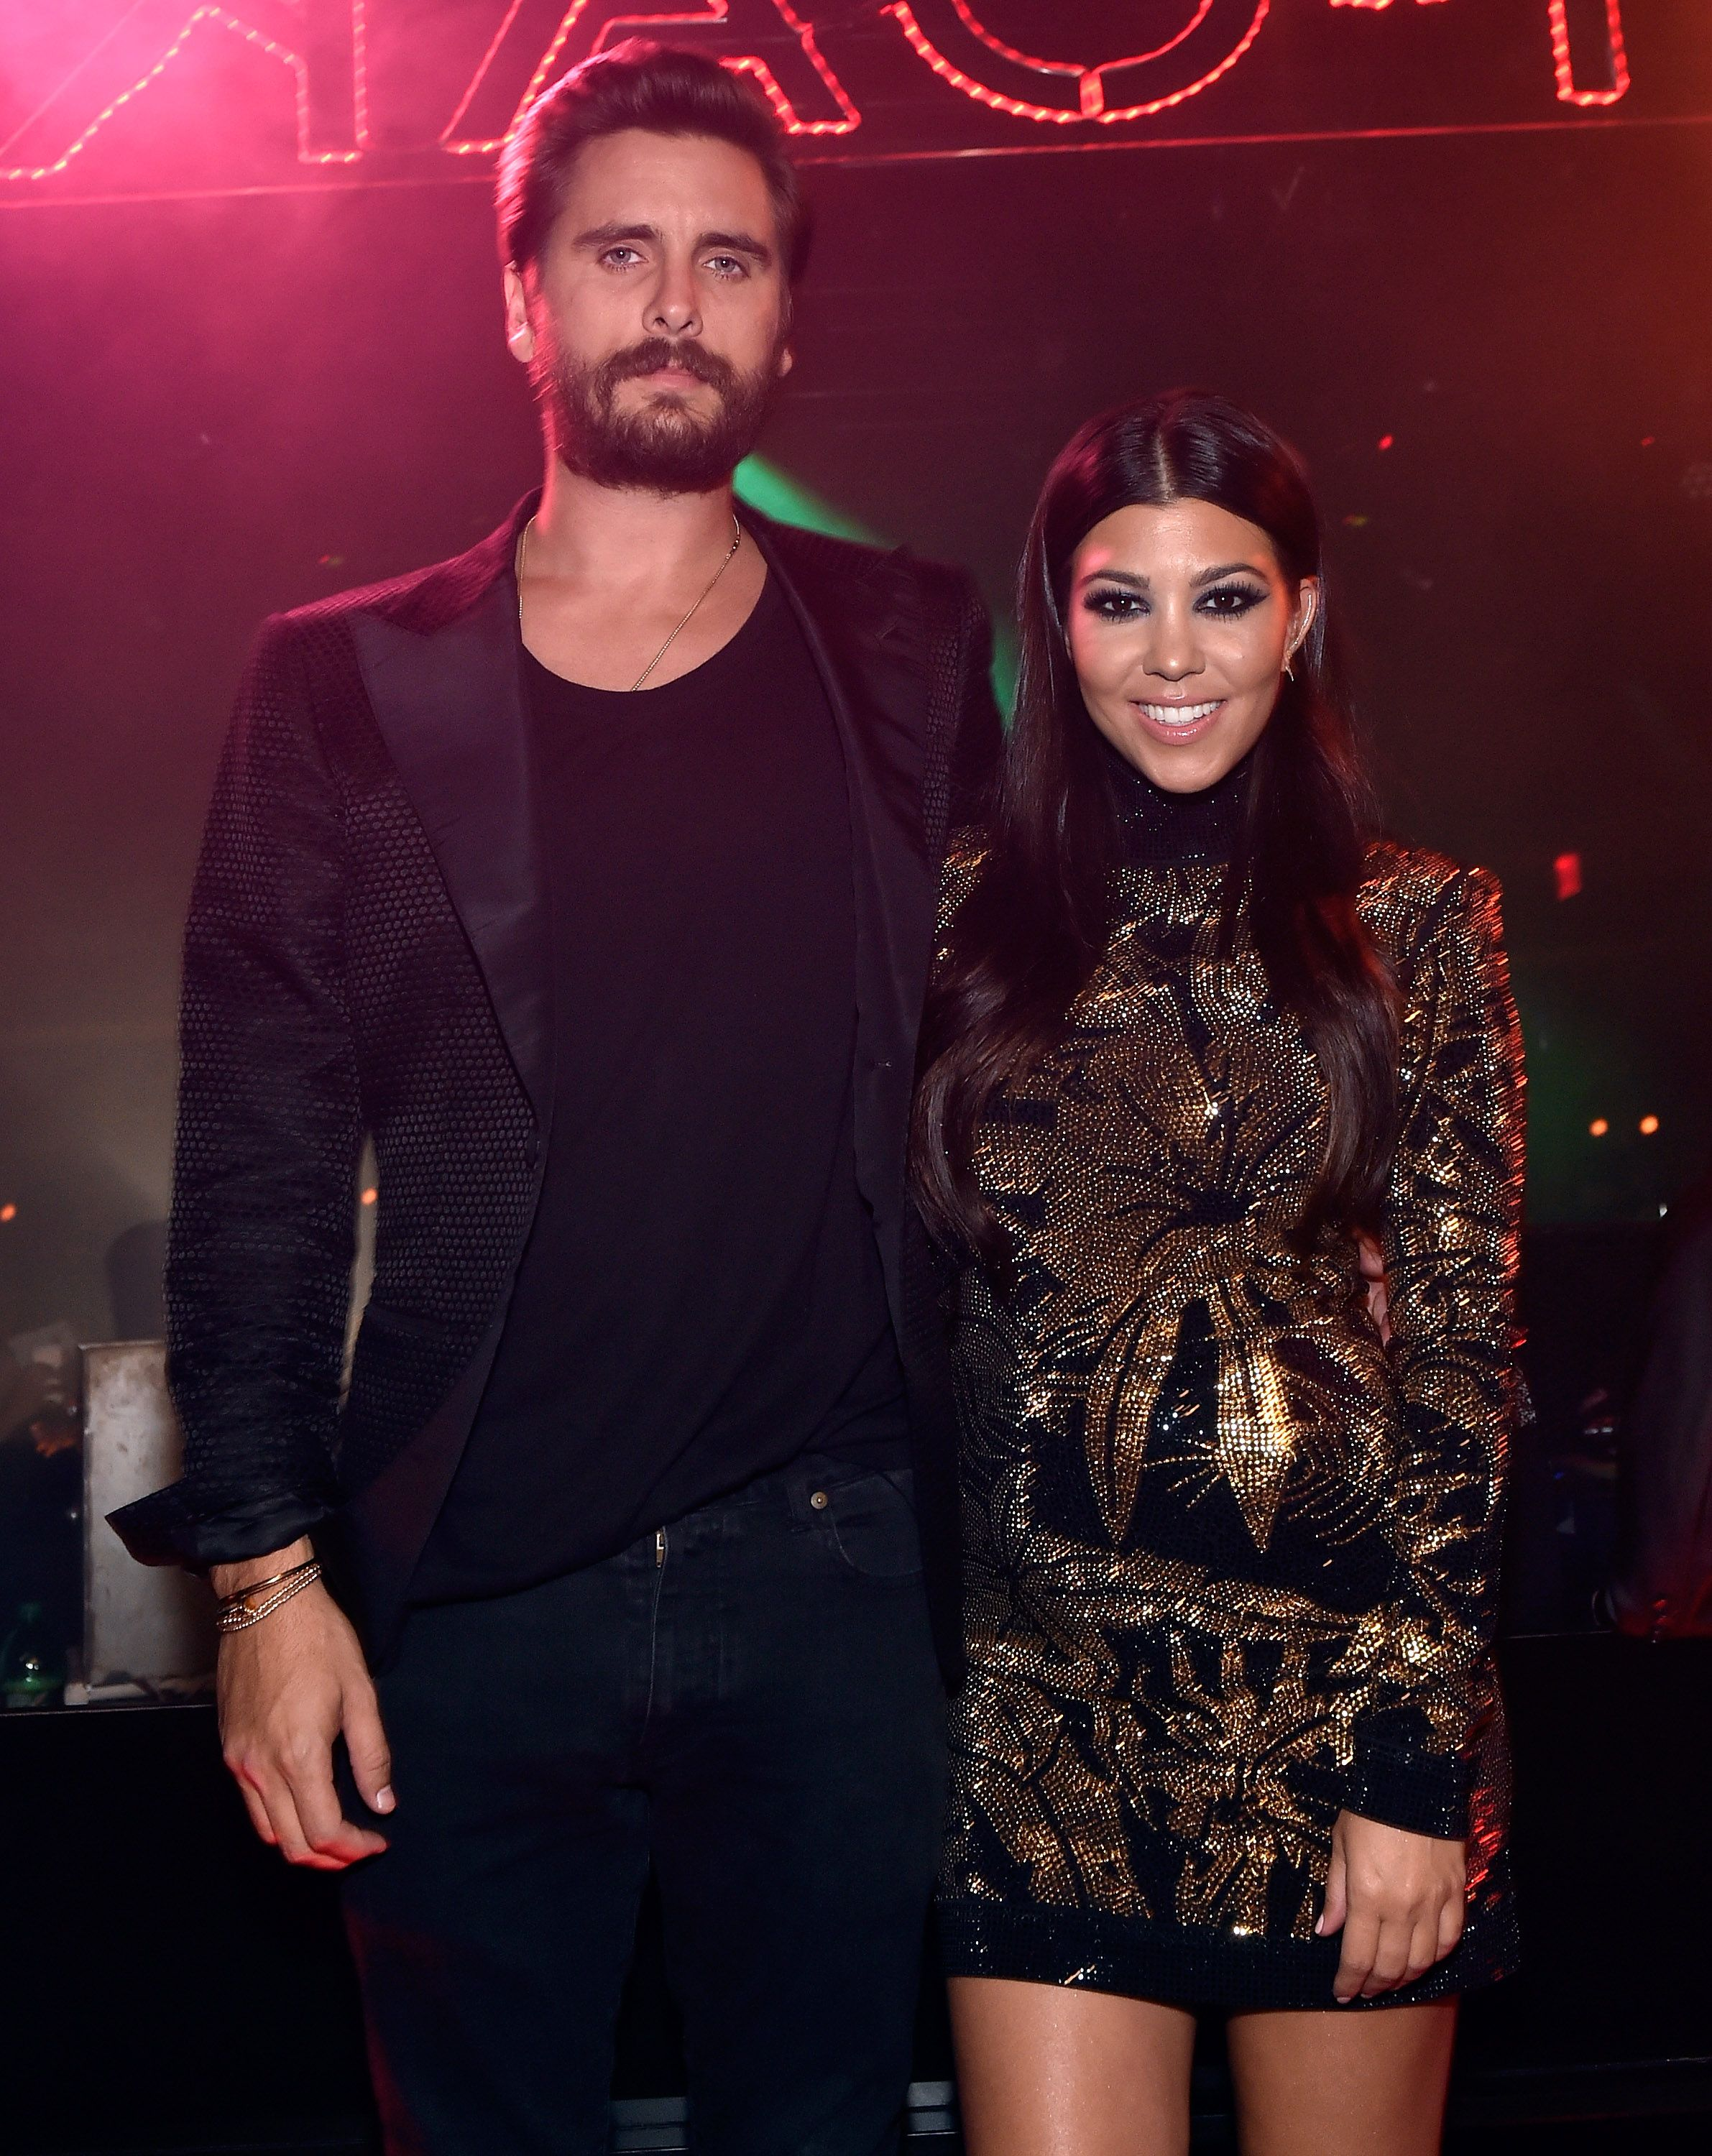 Kourtney Kardashian Learned That Scott Disick Might Be Her Soulmates on KUWTK